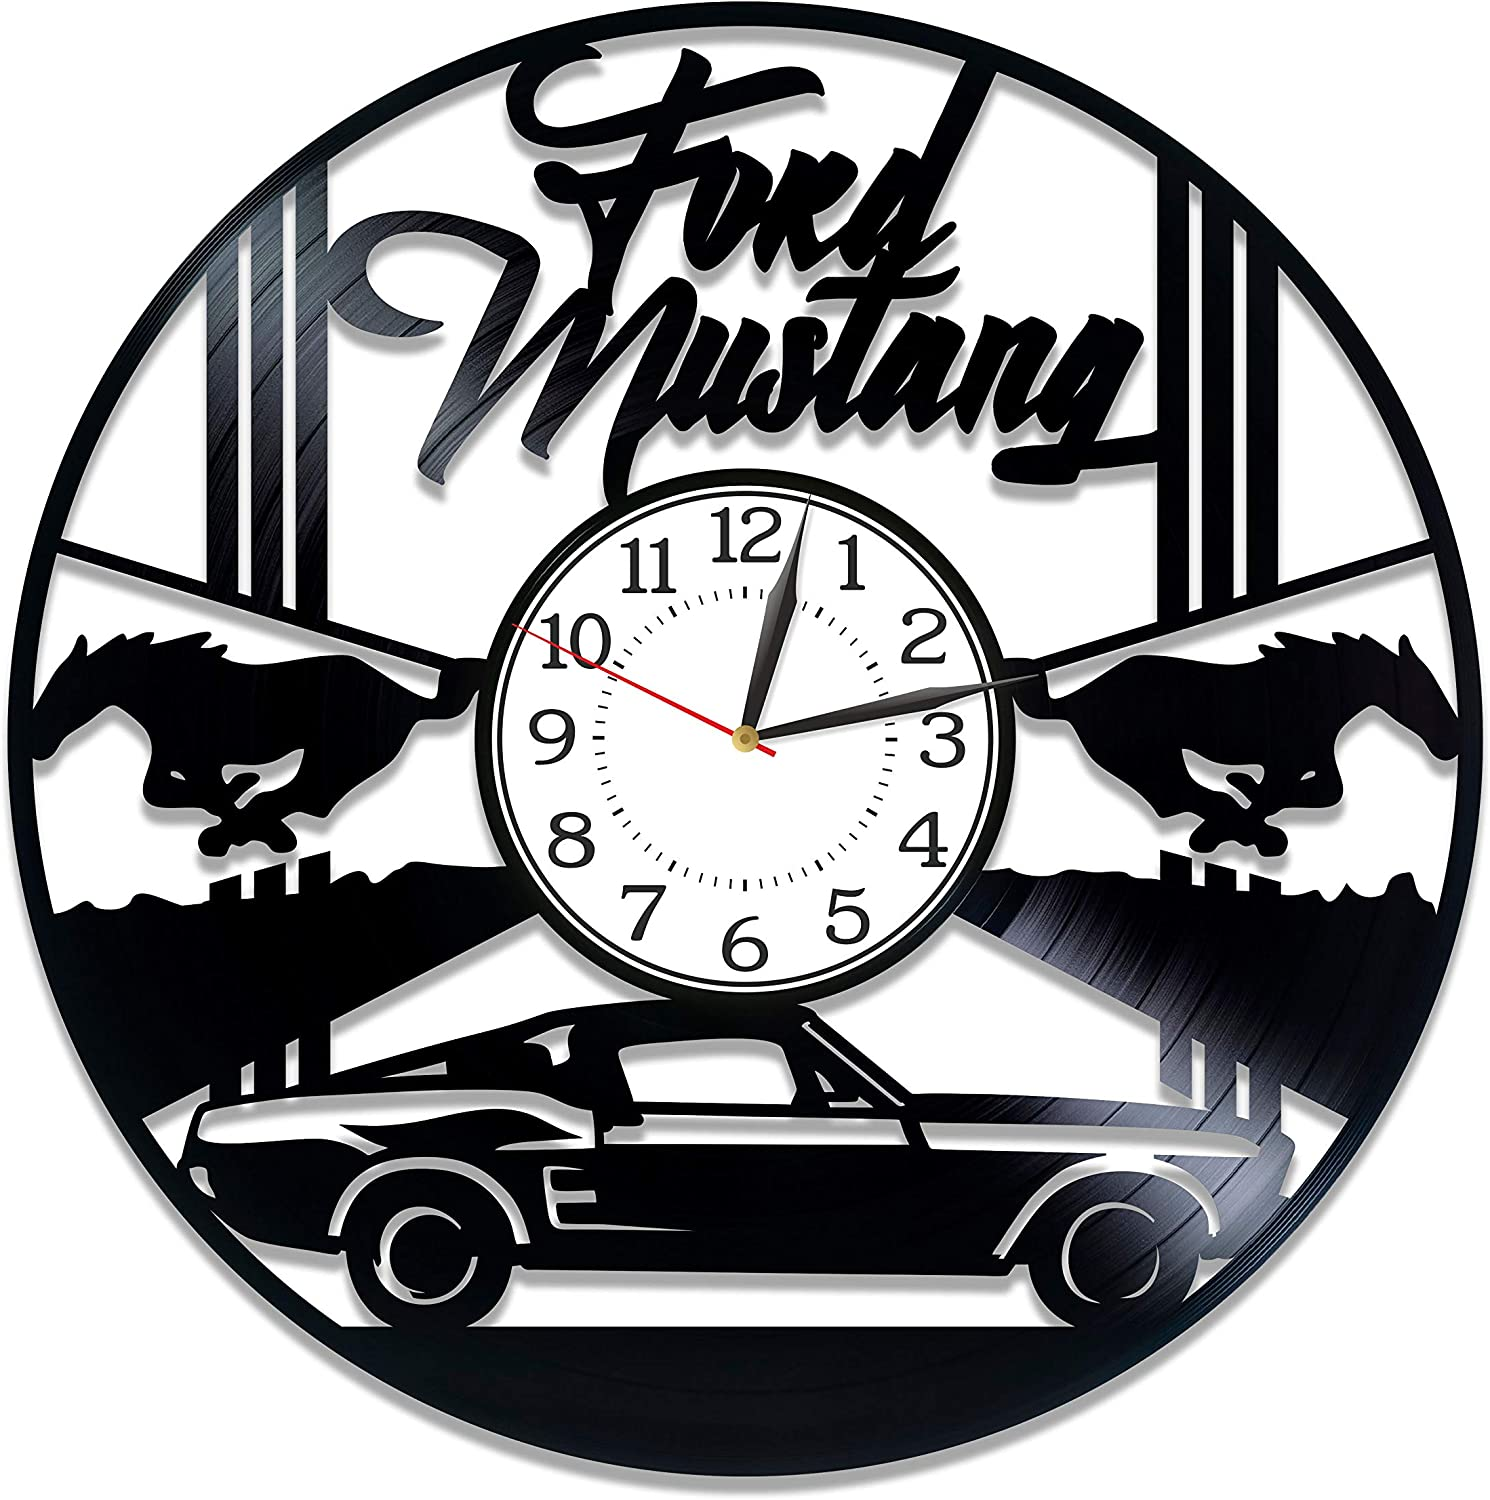 Kovides Sport Car Handmade Products Ford Mustang Birthday Gift Idea Car Wall Clock 12 Inch Speed Car for Man and Woman Original Home Decor Ford Mustang Vinyl Record Wall Clock